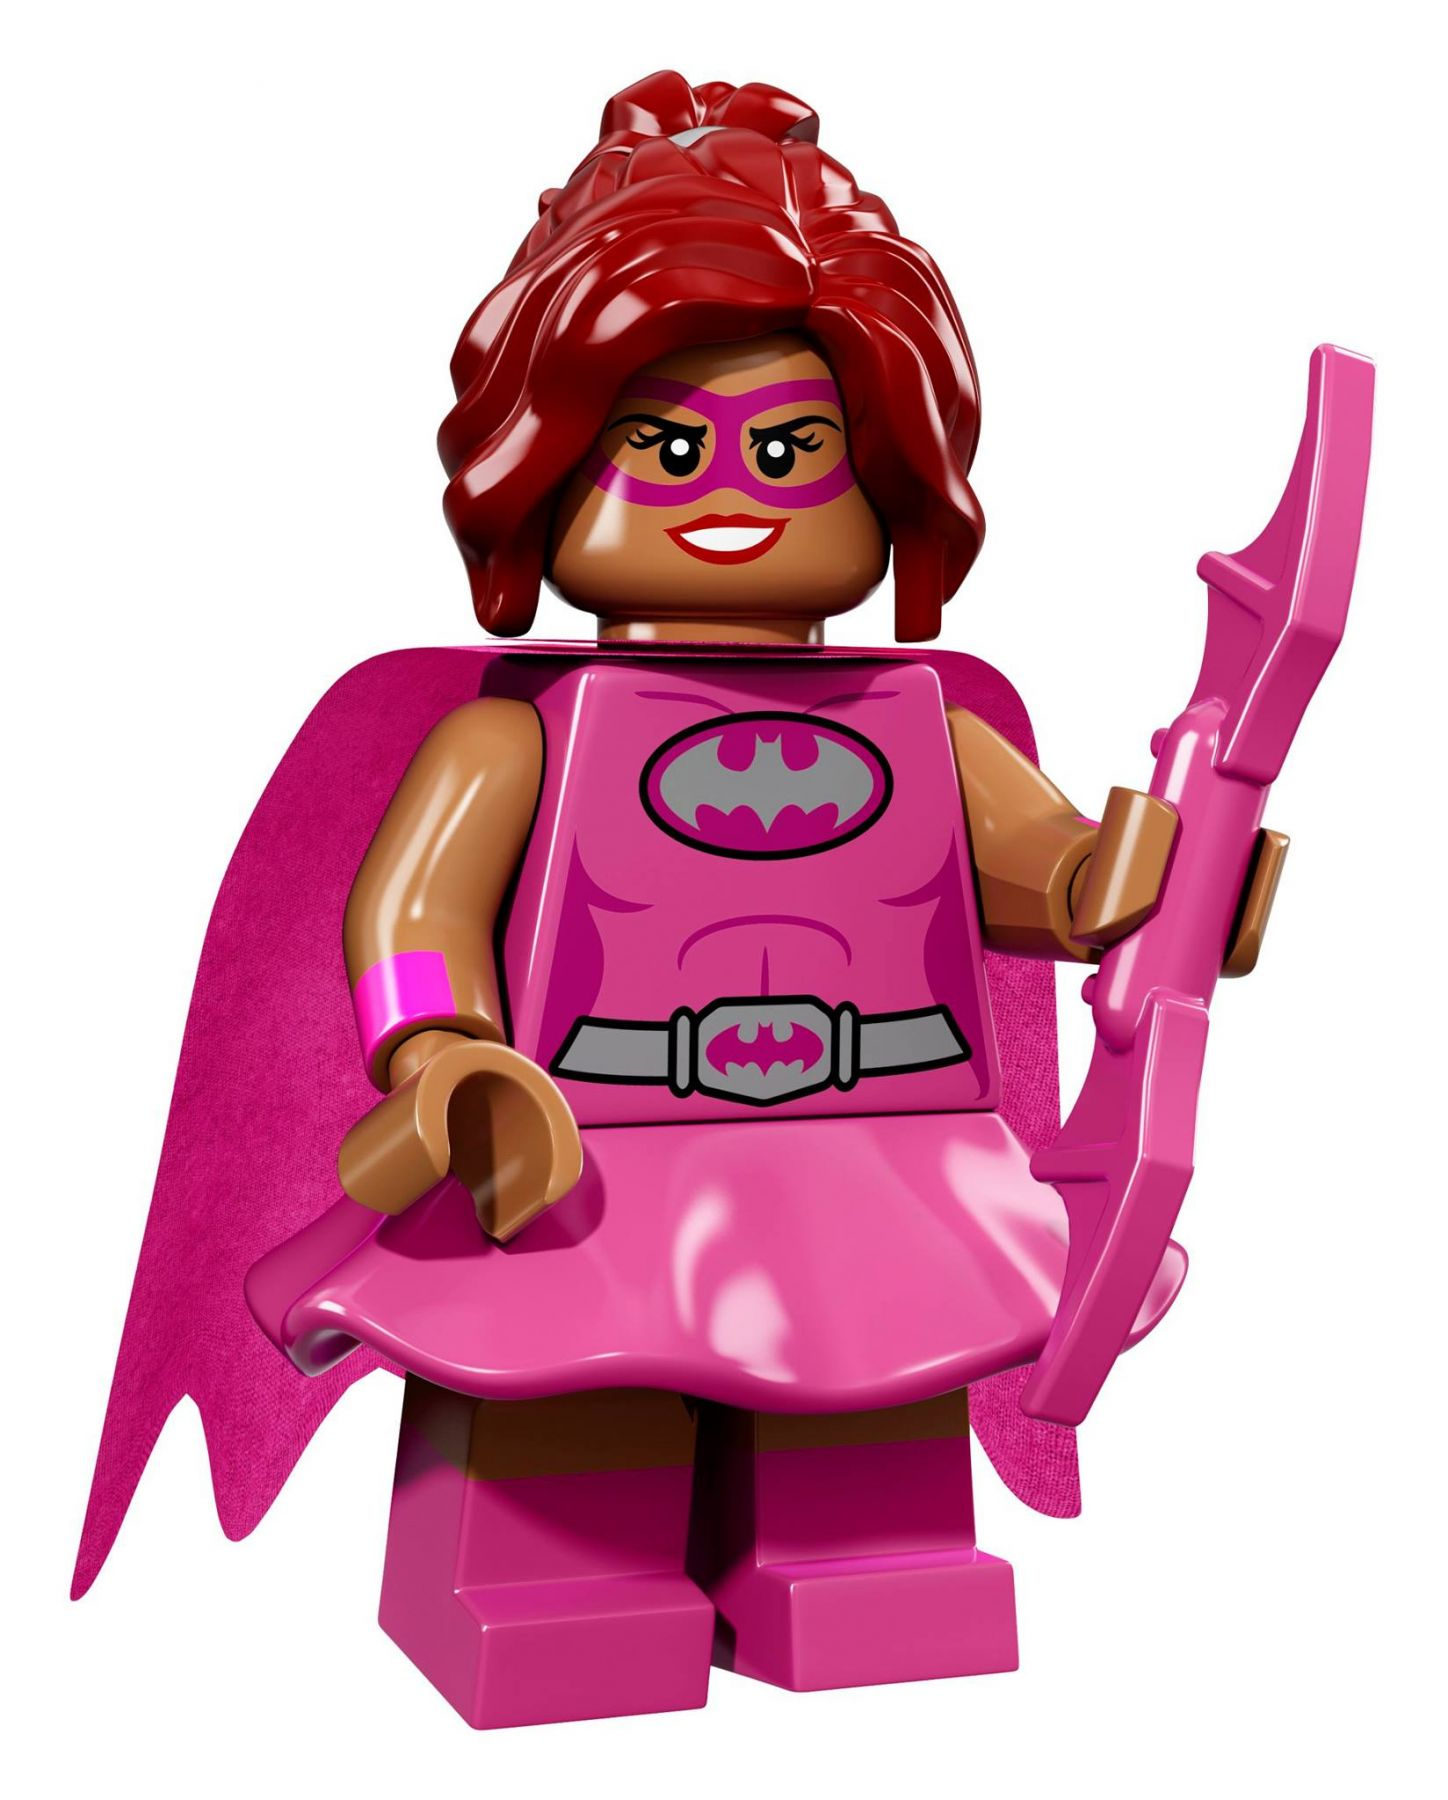 LEGO Collectable Minifigures 71017 LEGO® Batman Movie Minifiguren Serie 71017_LEGO_Batman_Movie_Minifiguren_Serie_figur05.jpg